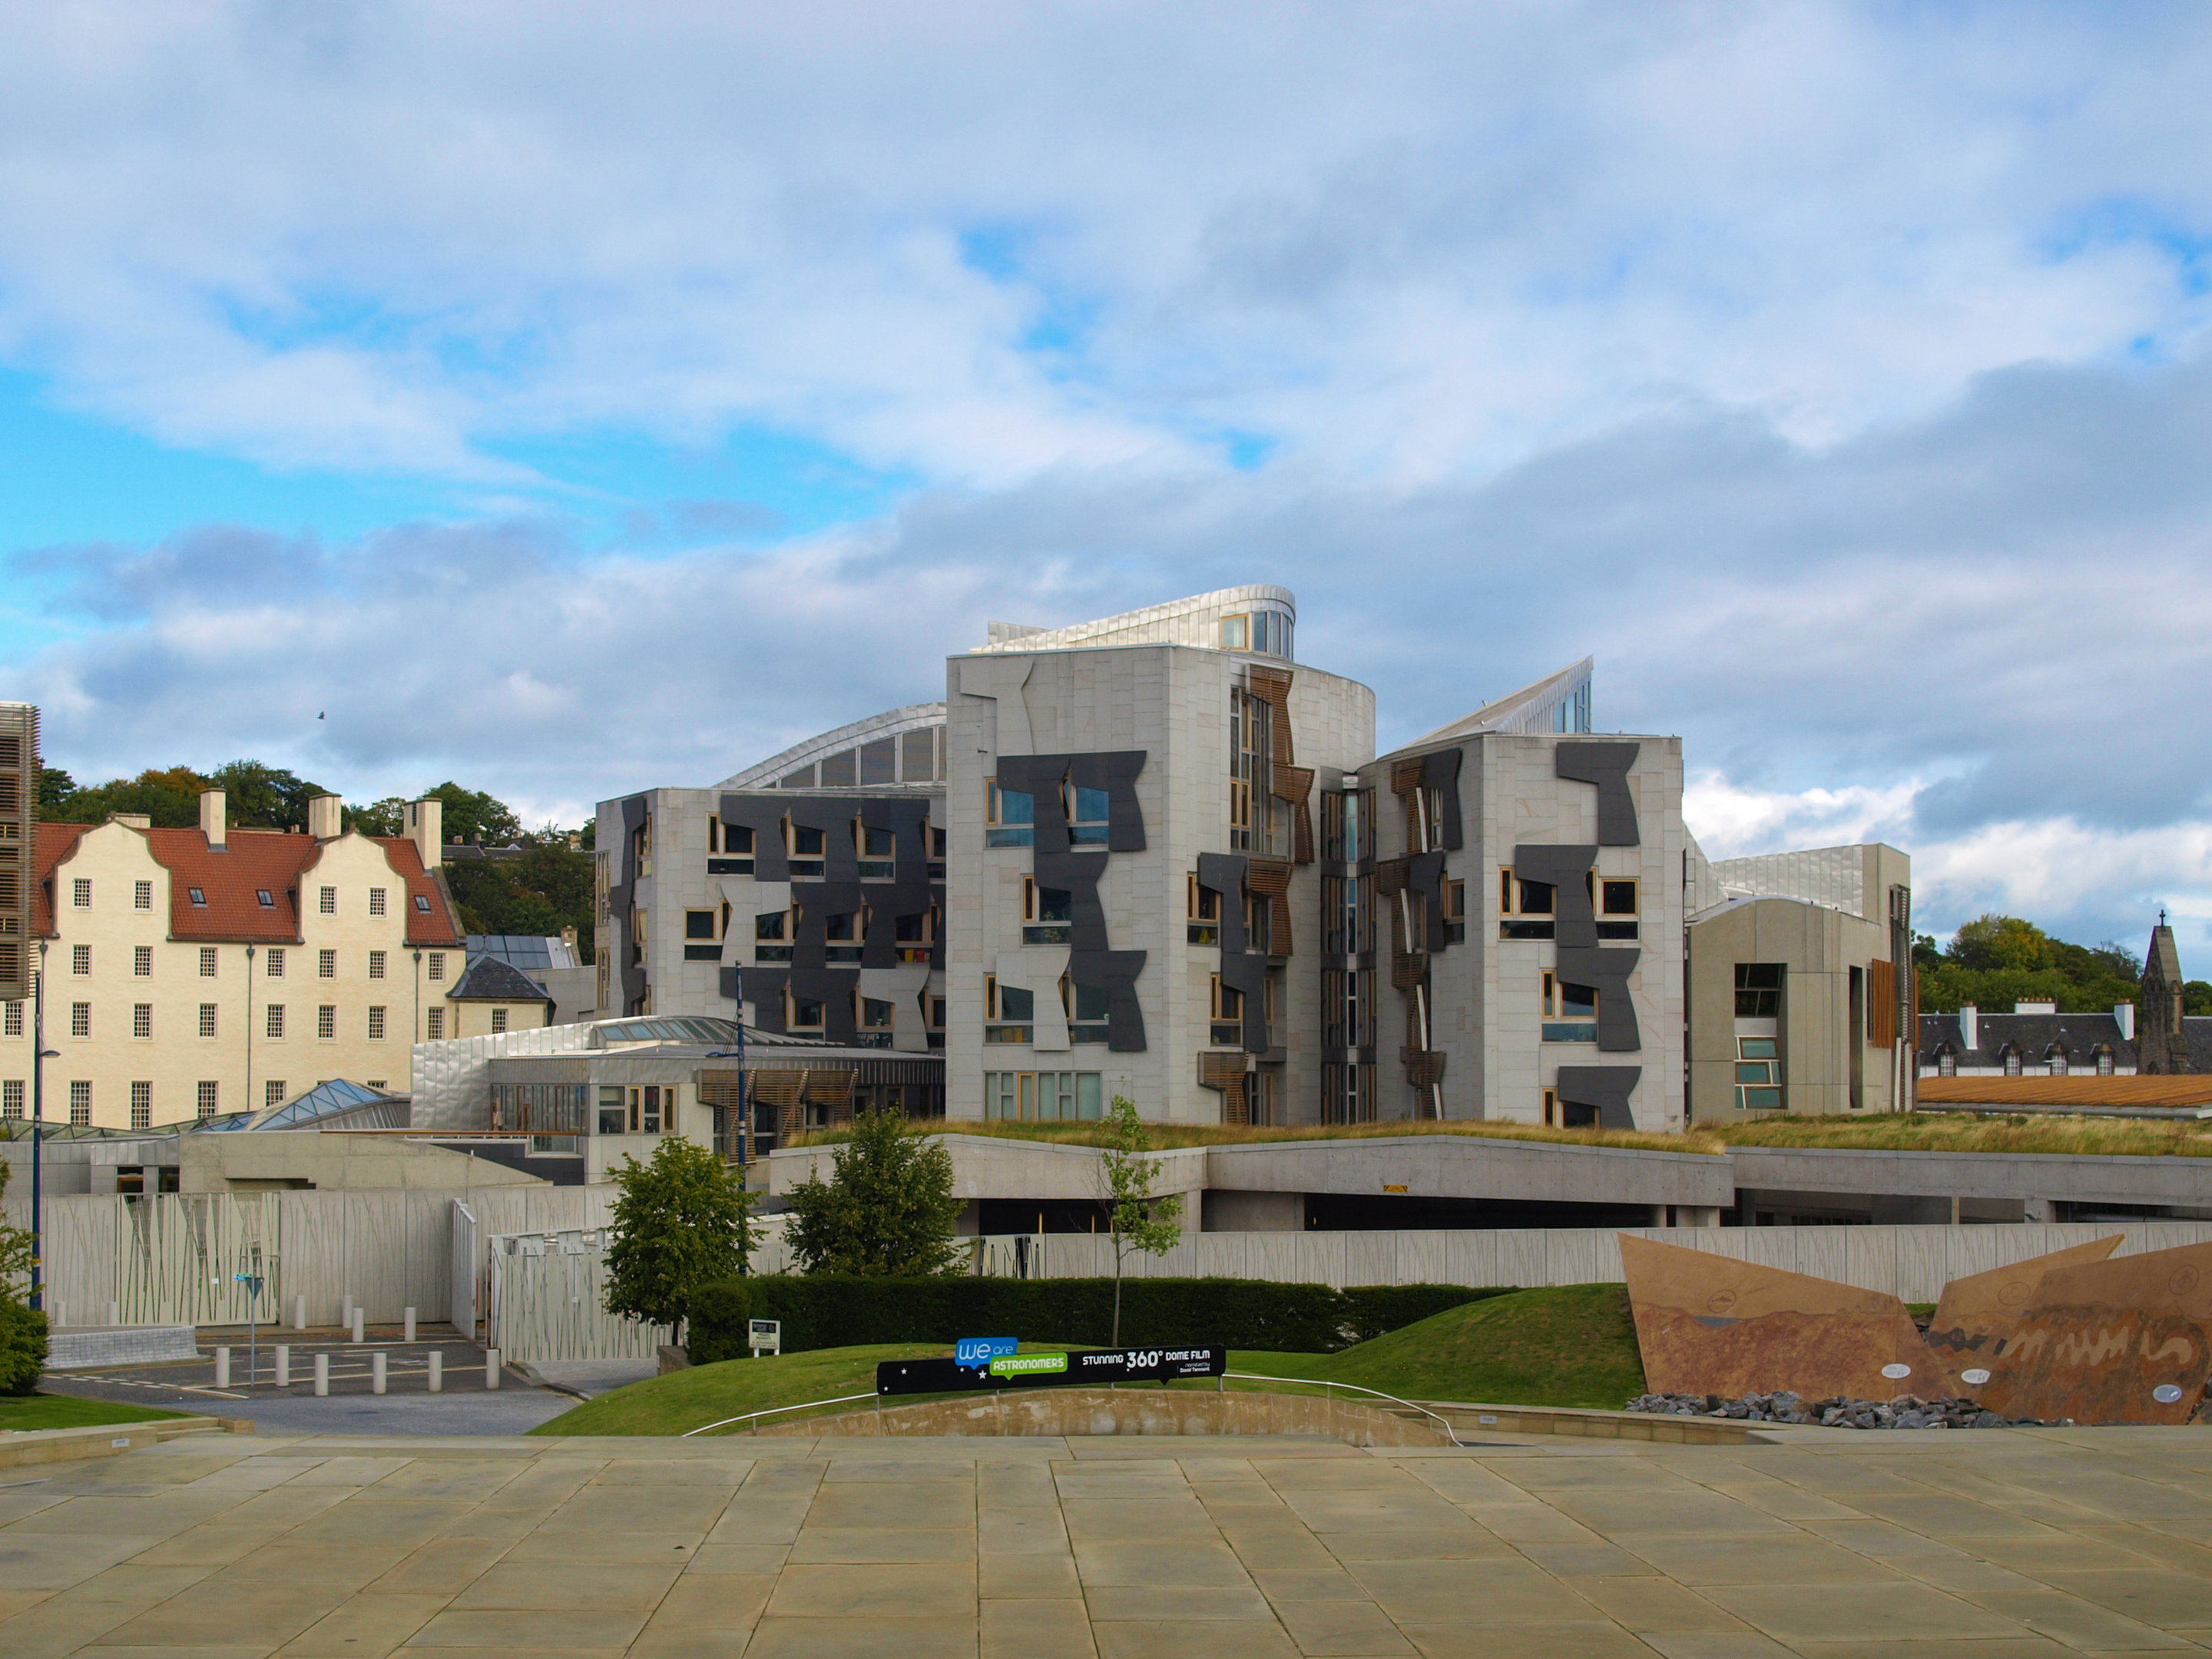 Scottish Parliament has been evacuated (iStock)